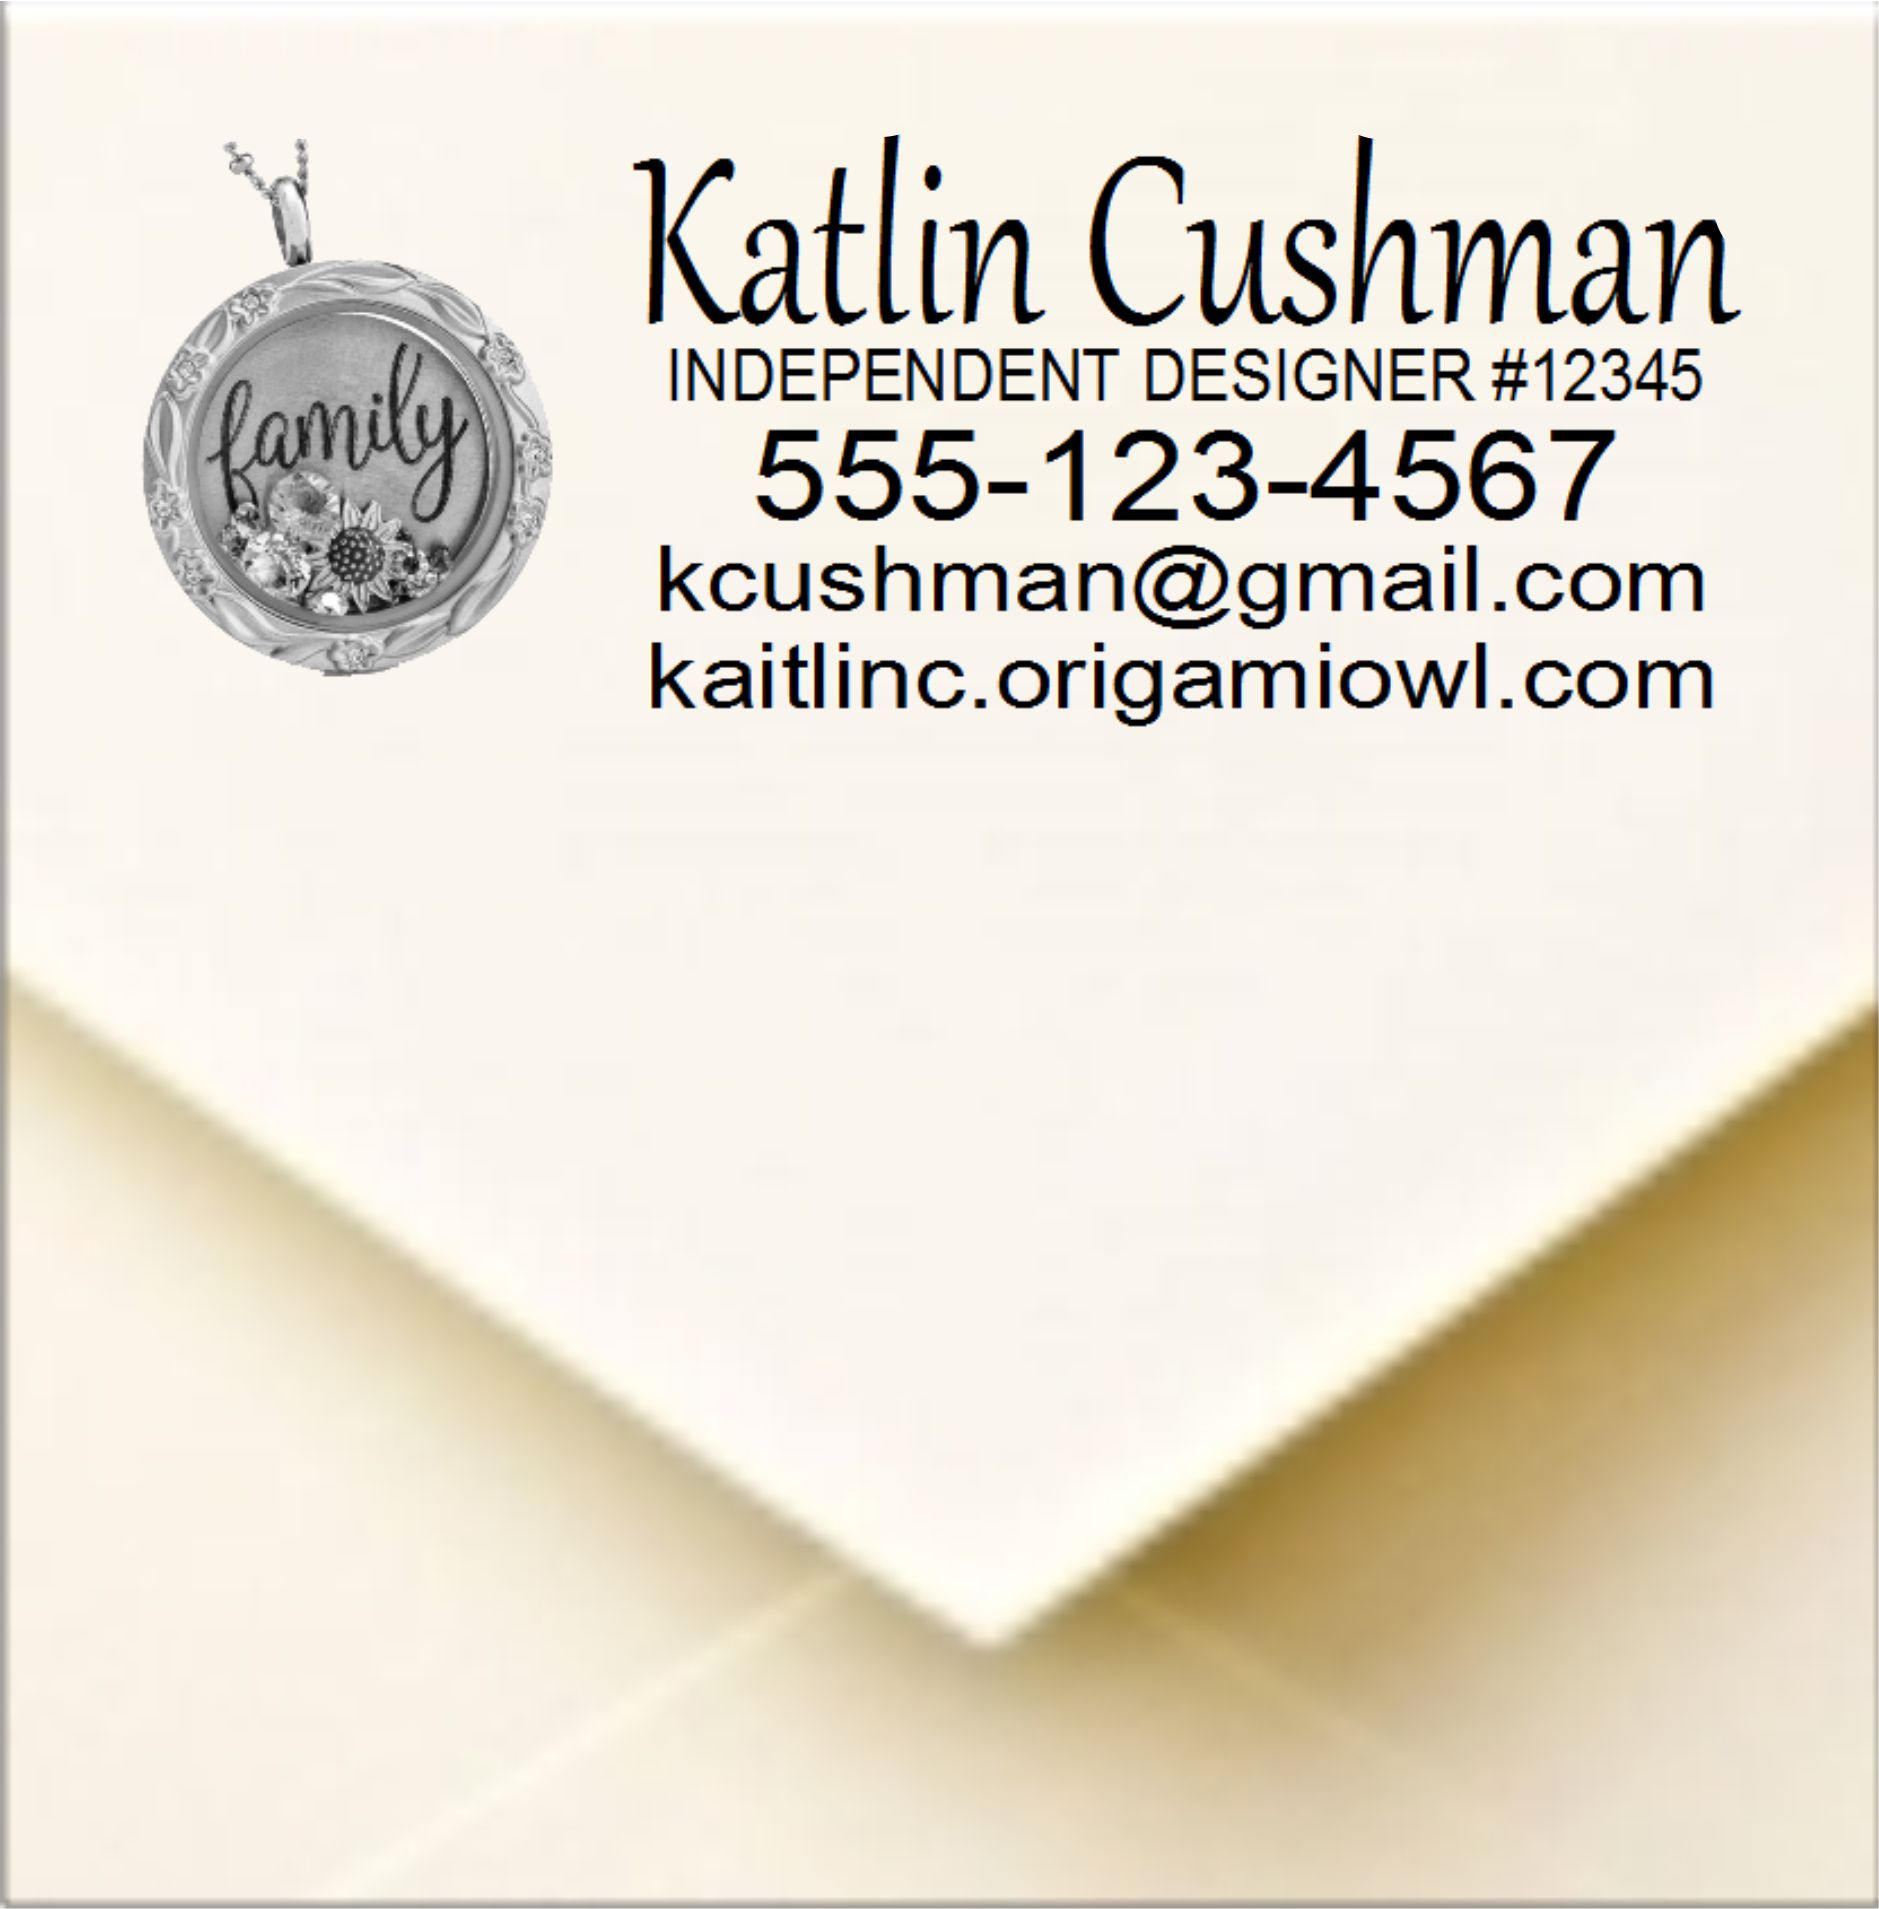 Origami Owl Designer Login Origami Owl Designer Pre Inked Stamp To Use For Your Invoices And Catalogs 2770 Stop Using Labels